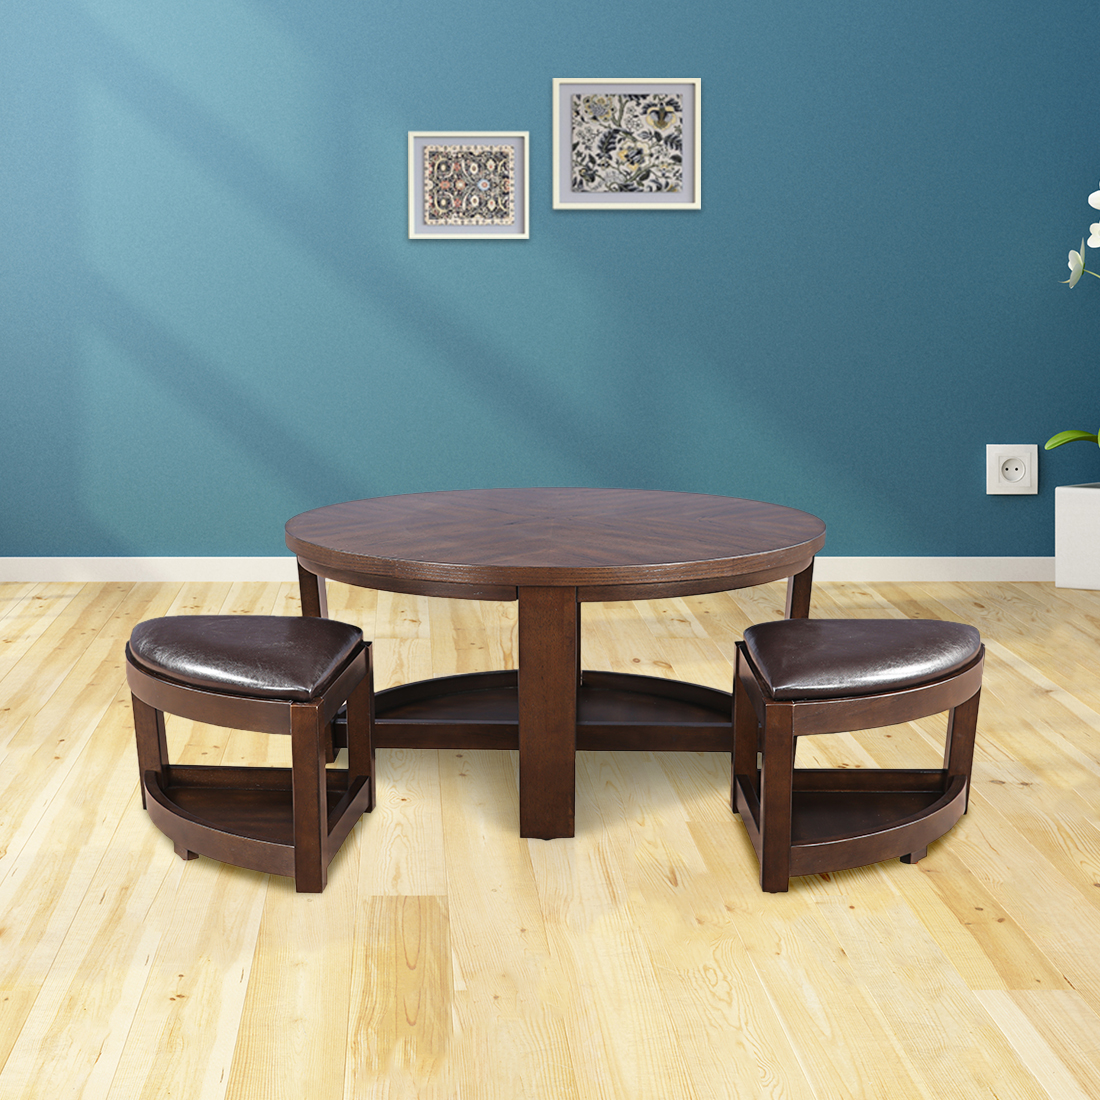 Ryan Solid Wood Center Table With Two Stools in Brown Colour by HomeTown